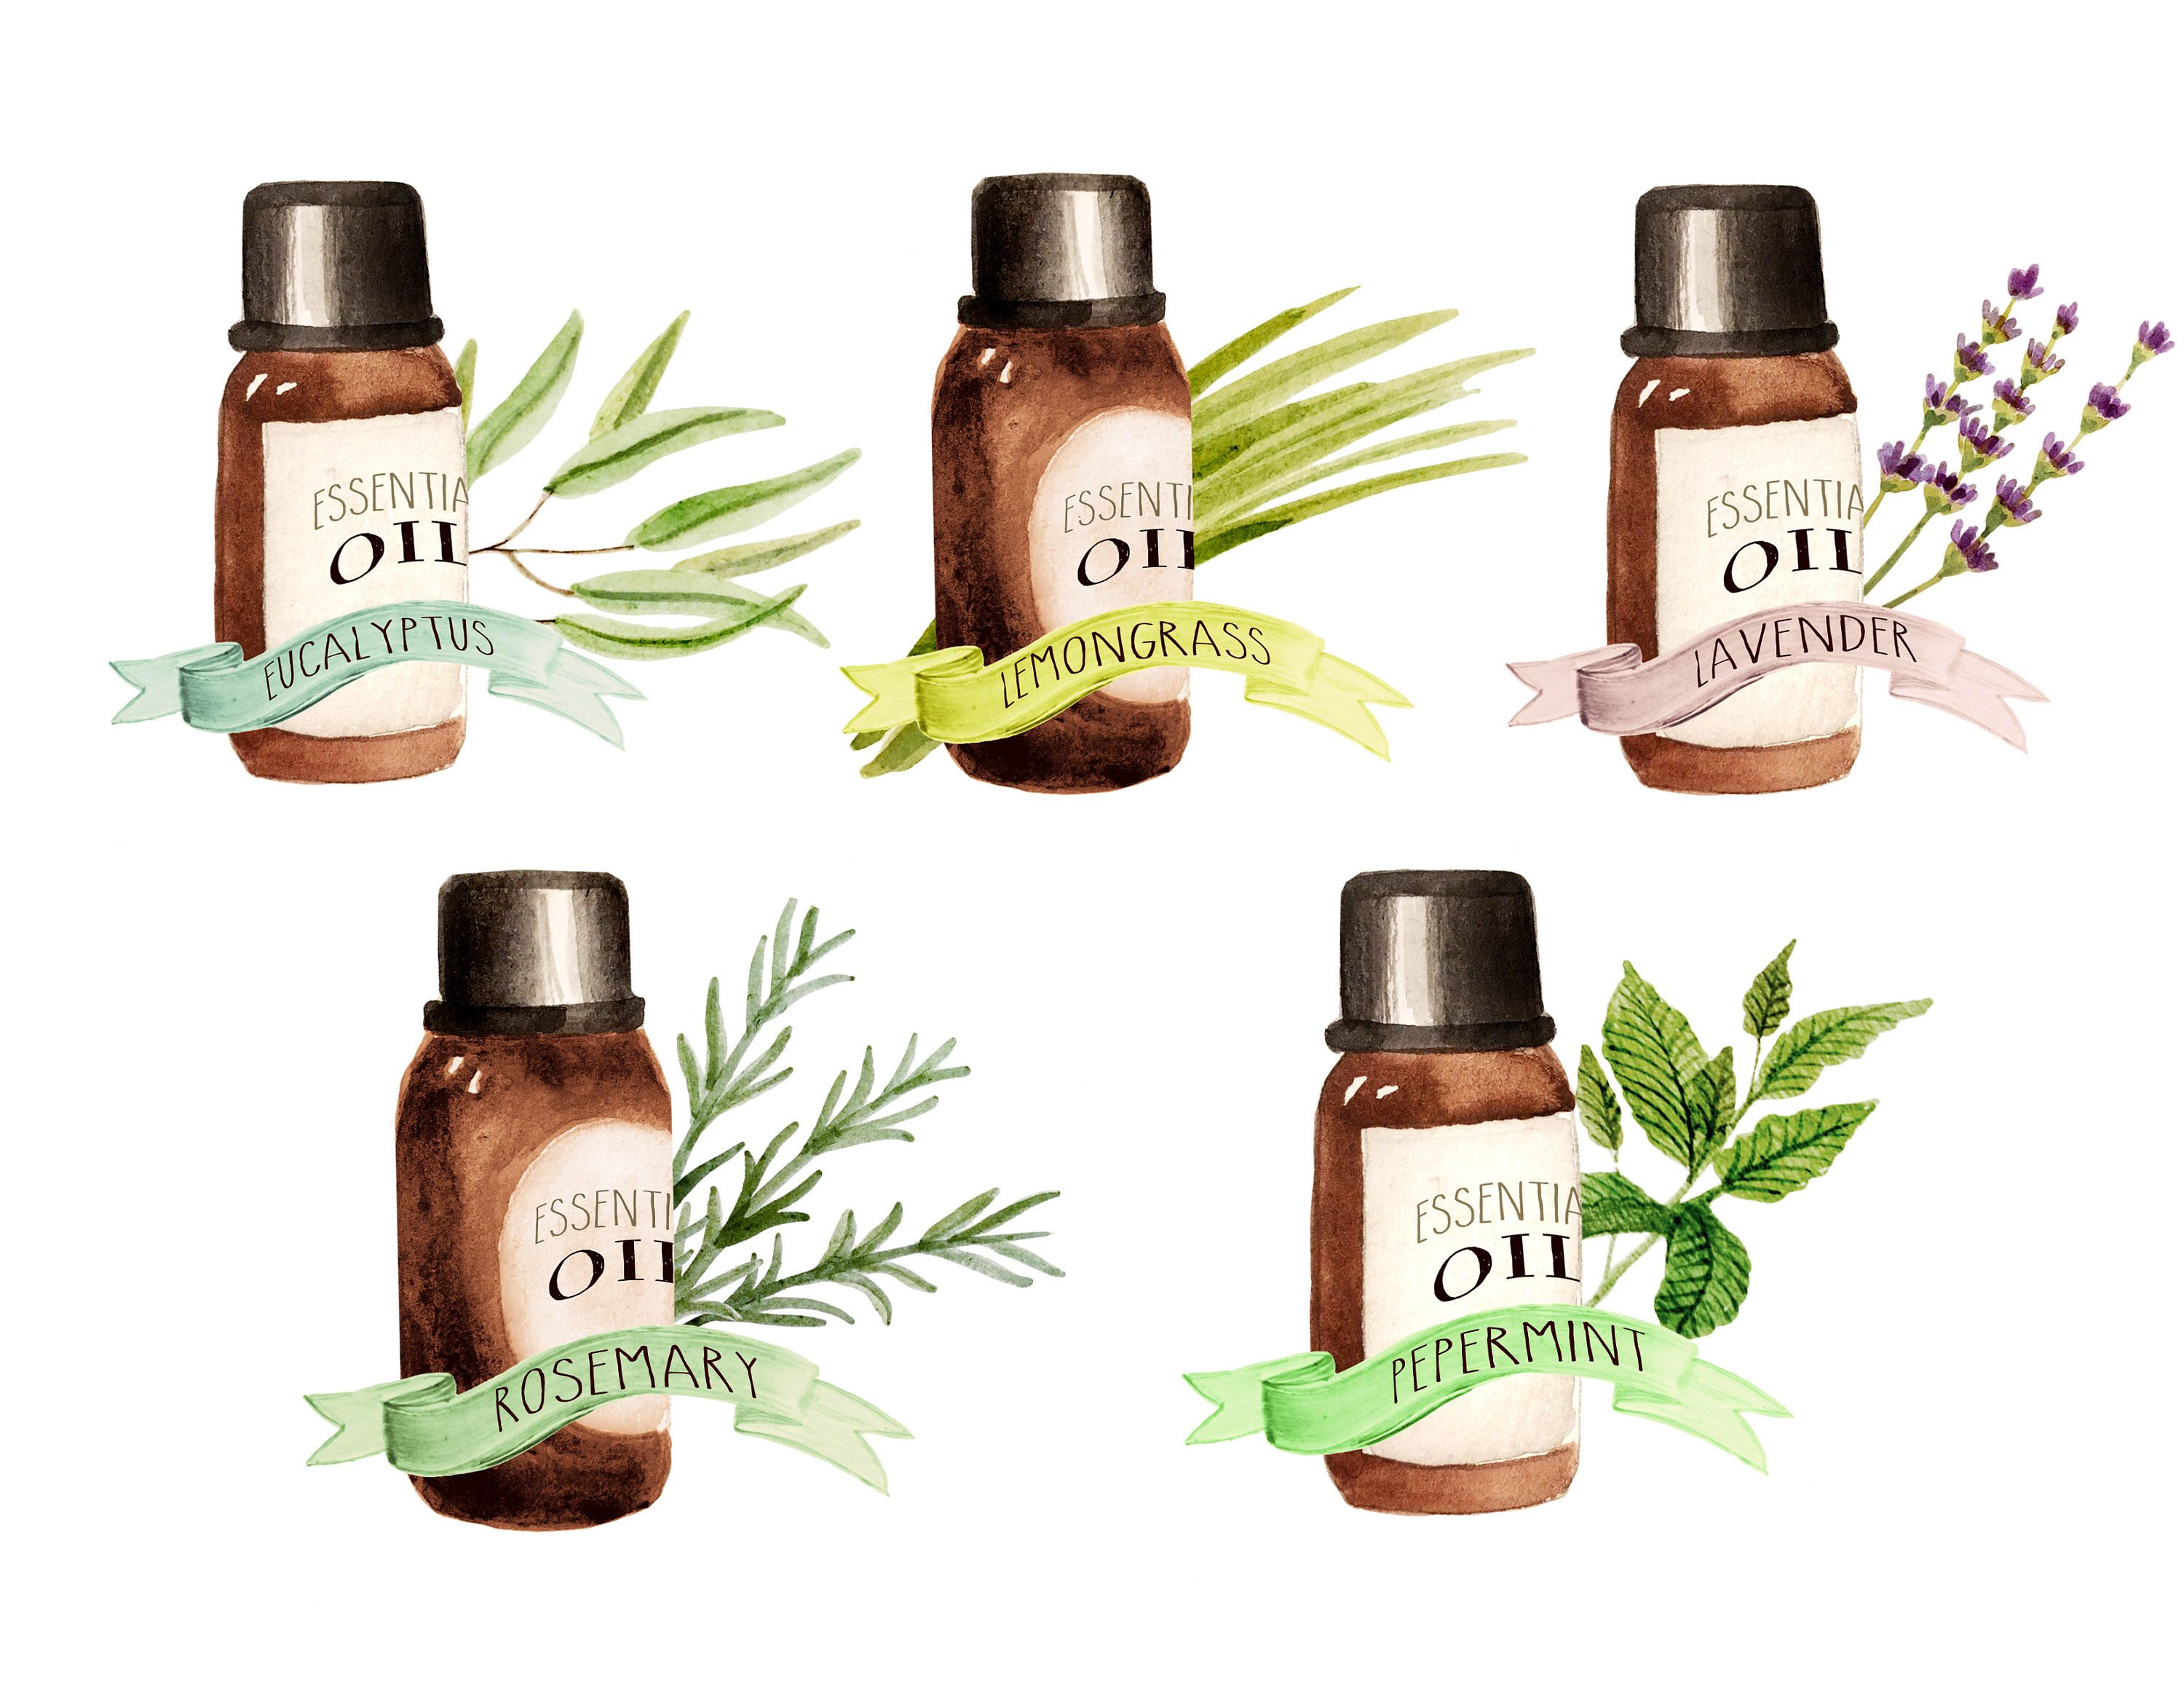 Oil clipart essential oil. Free oils cliparts download